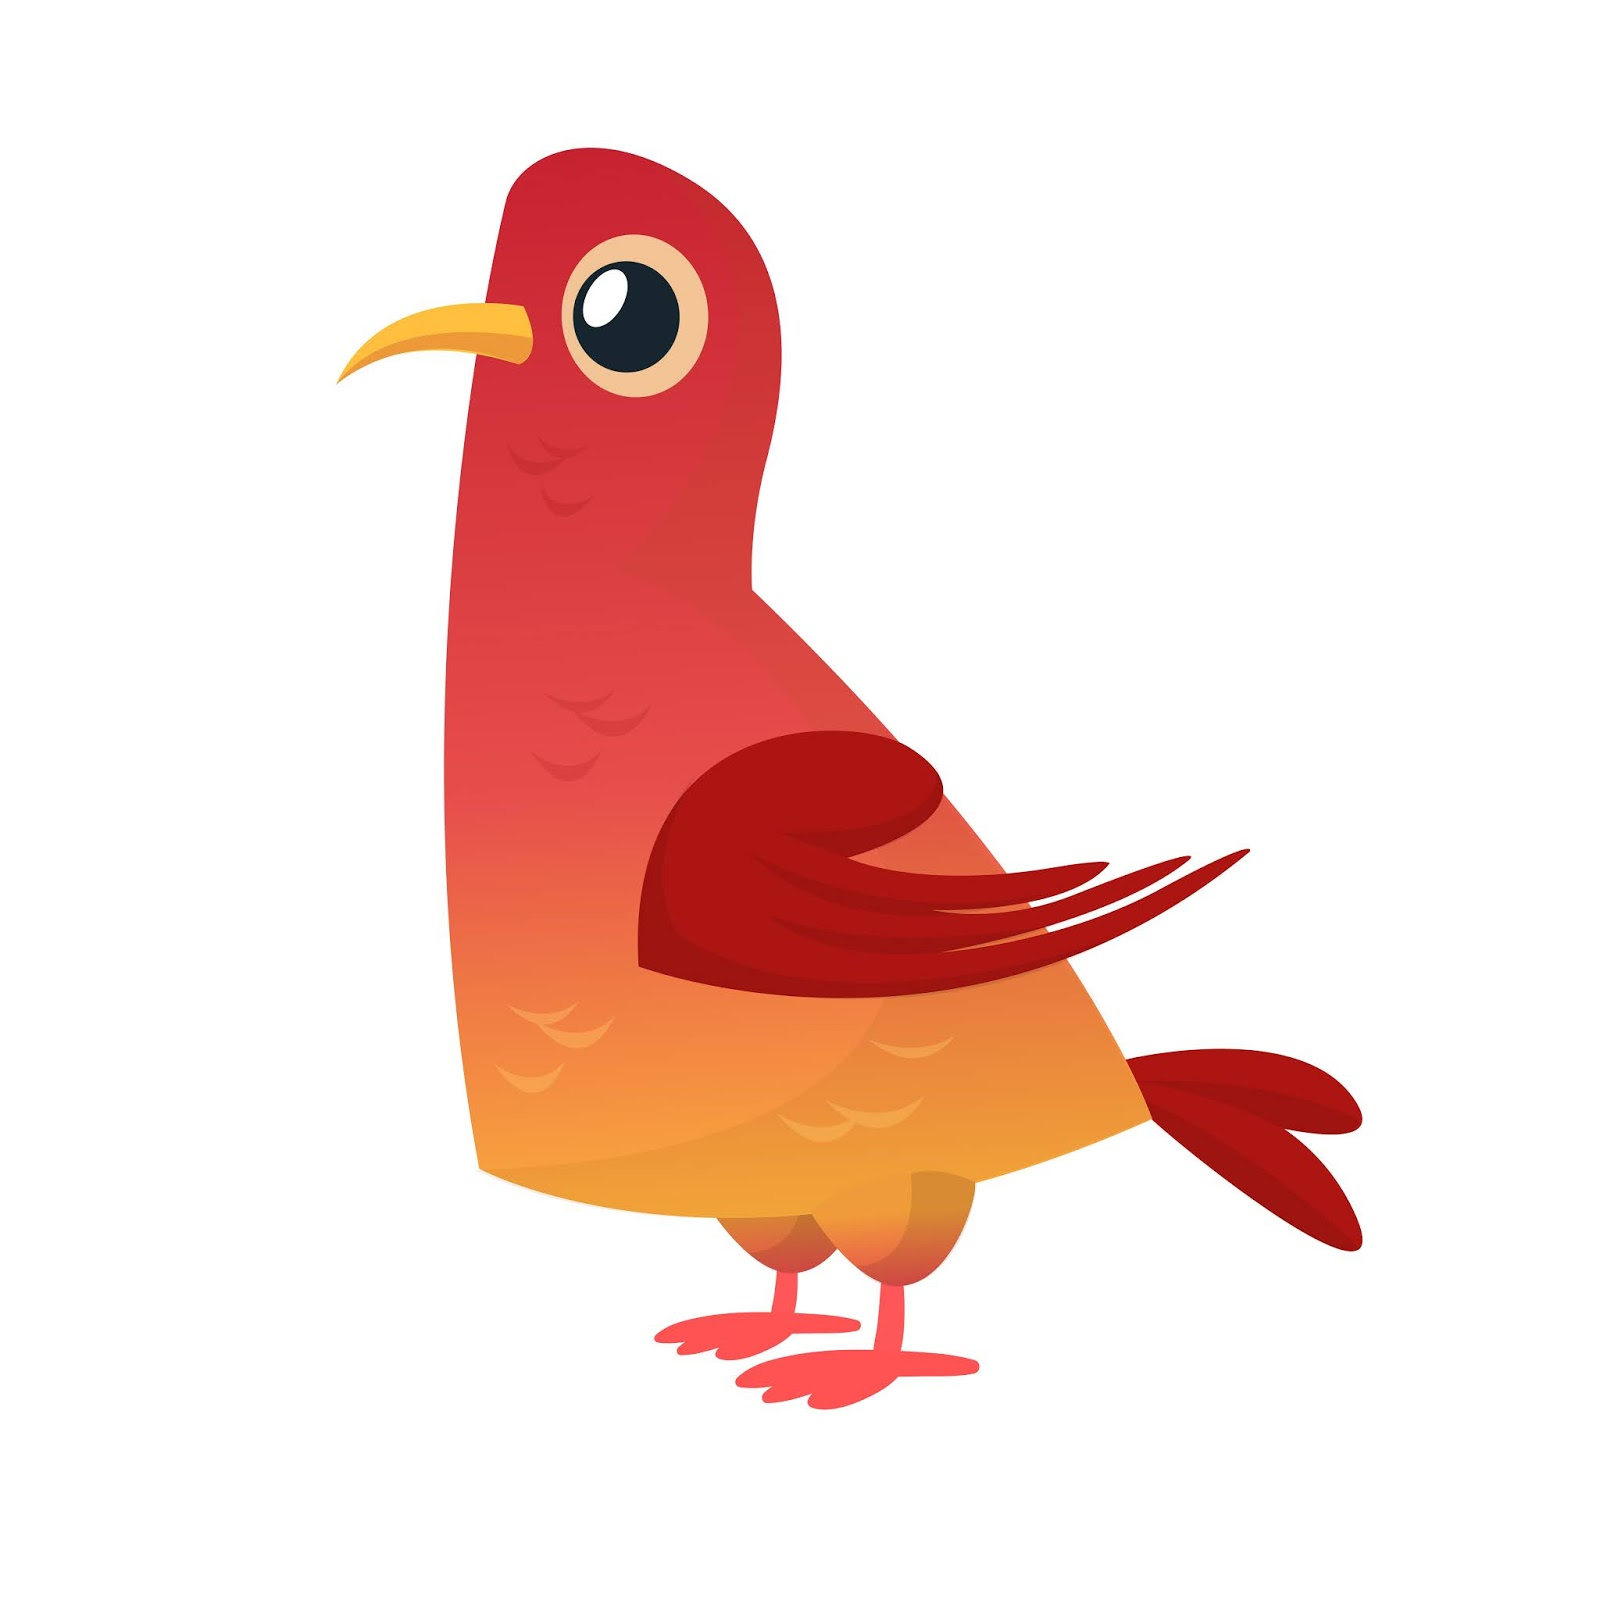 Cartoon Pigeon Free Download Vector CDR, AI, EPS and PNG Formats